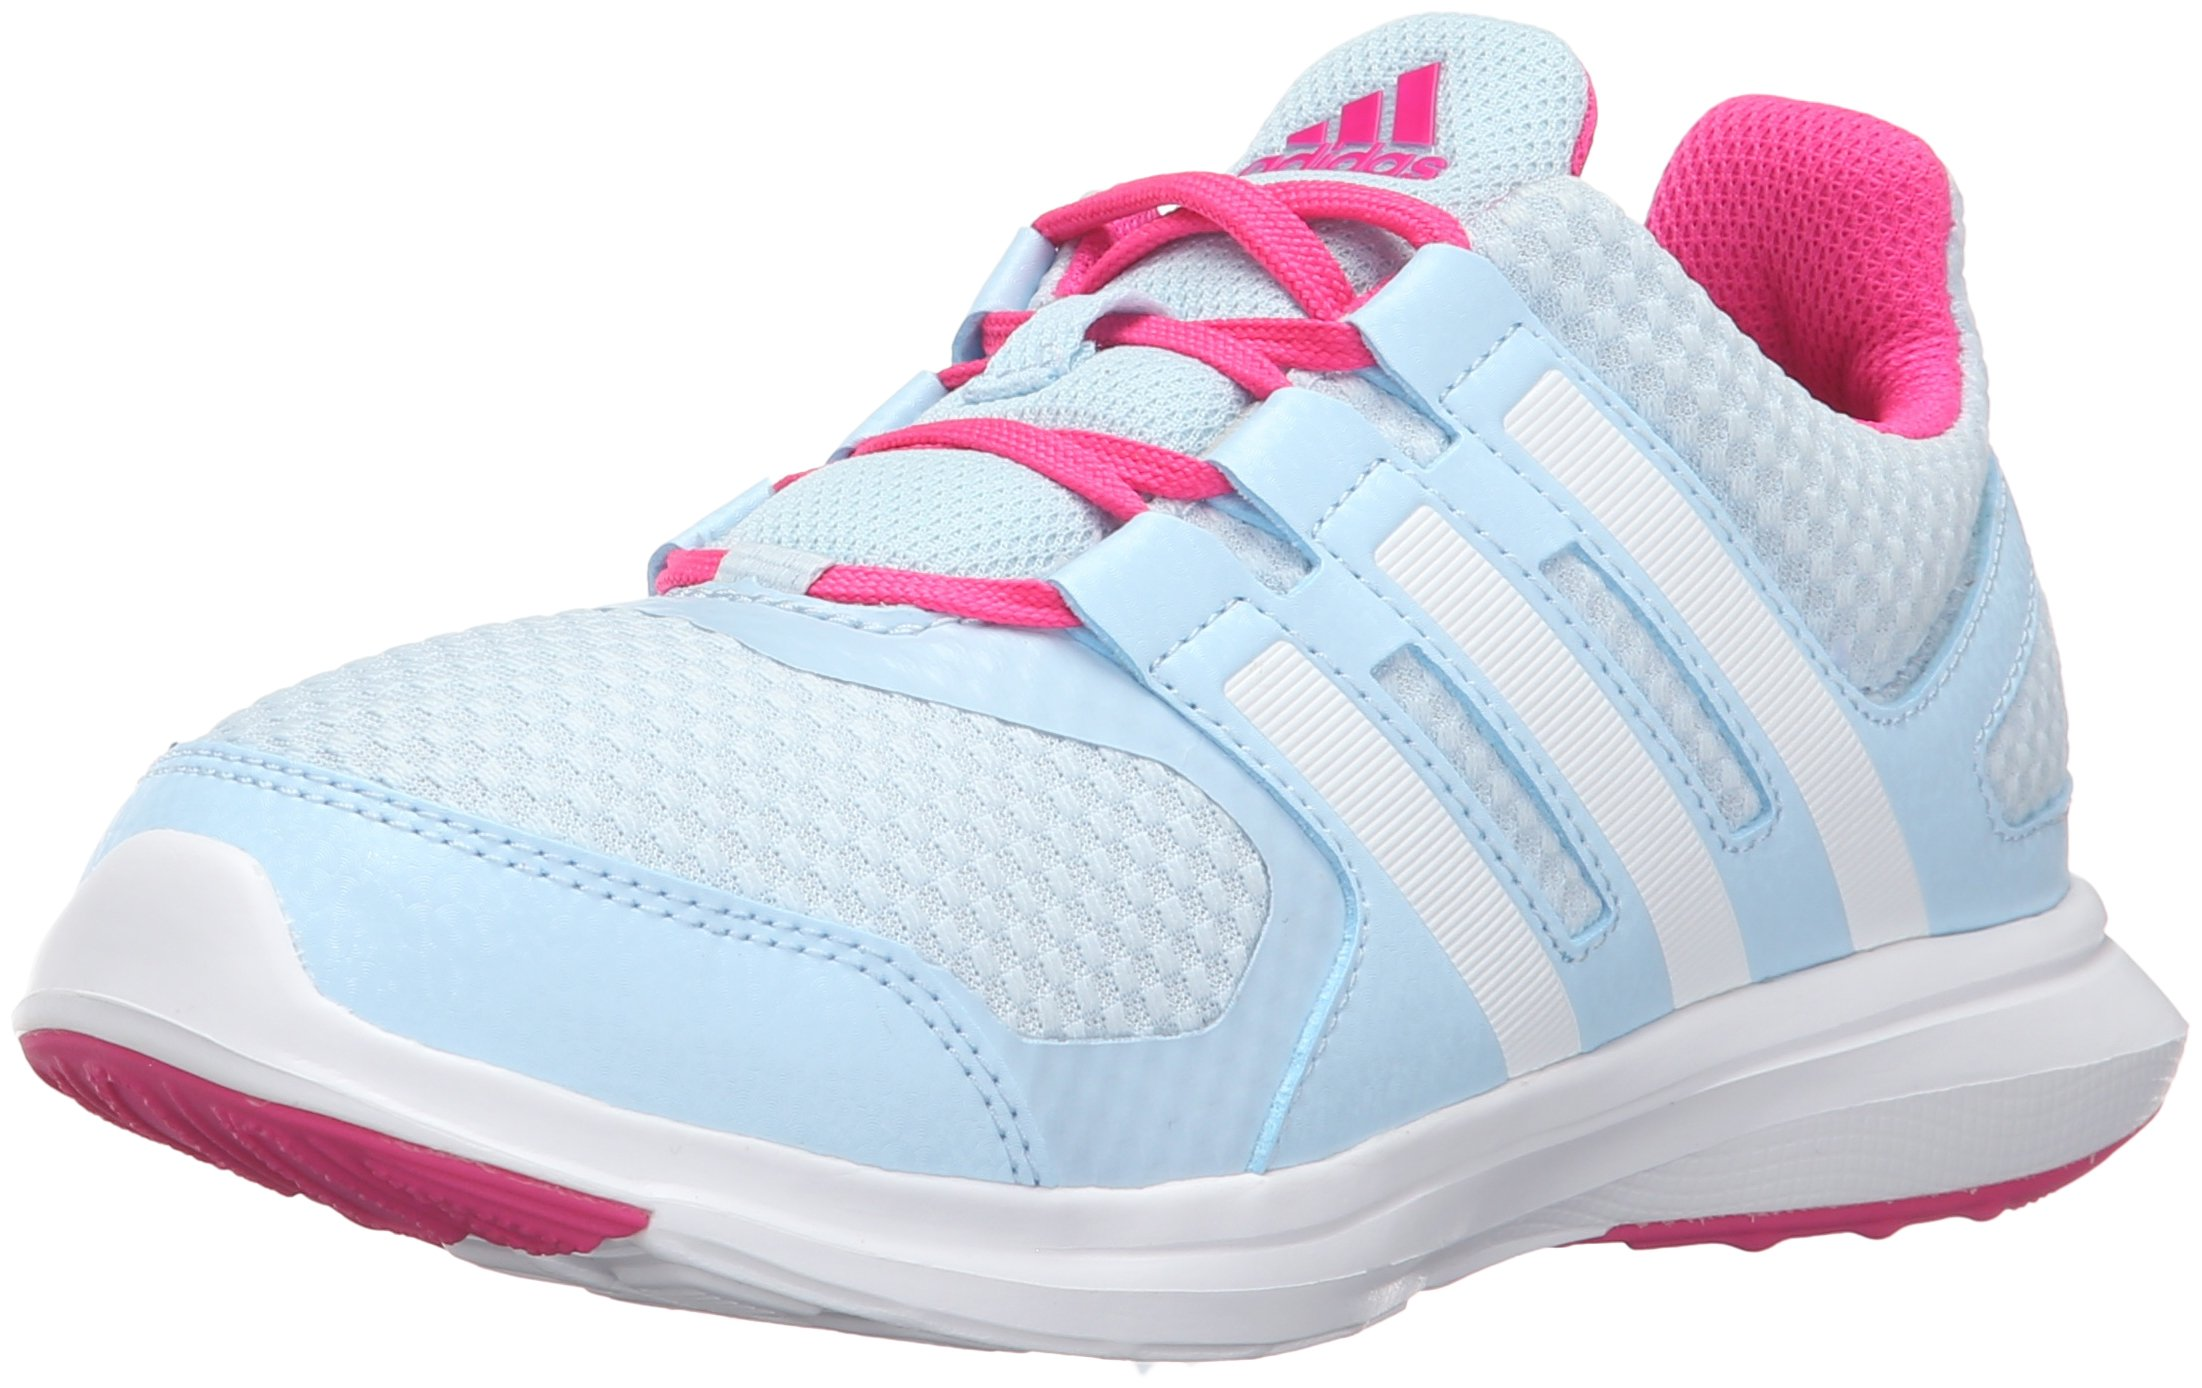 detailed pictures 85a92 be5ad Galleon - Adidas Girls  Hyperfast 2.0 K Running Shoe, Ice Blue White Shock  Pink, 6.5 M US Big Kid